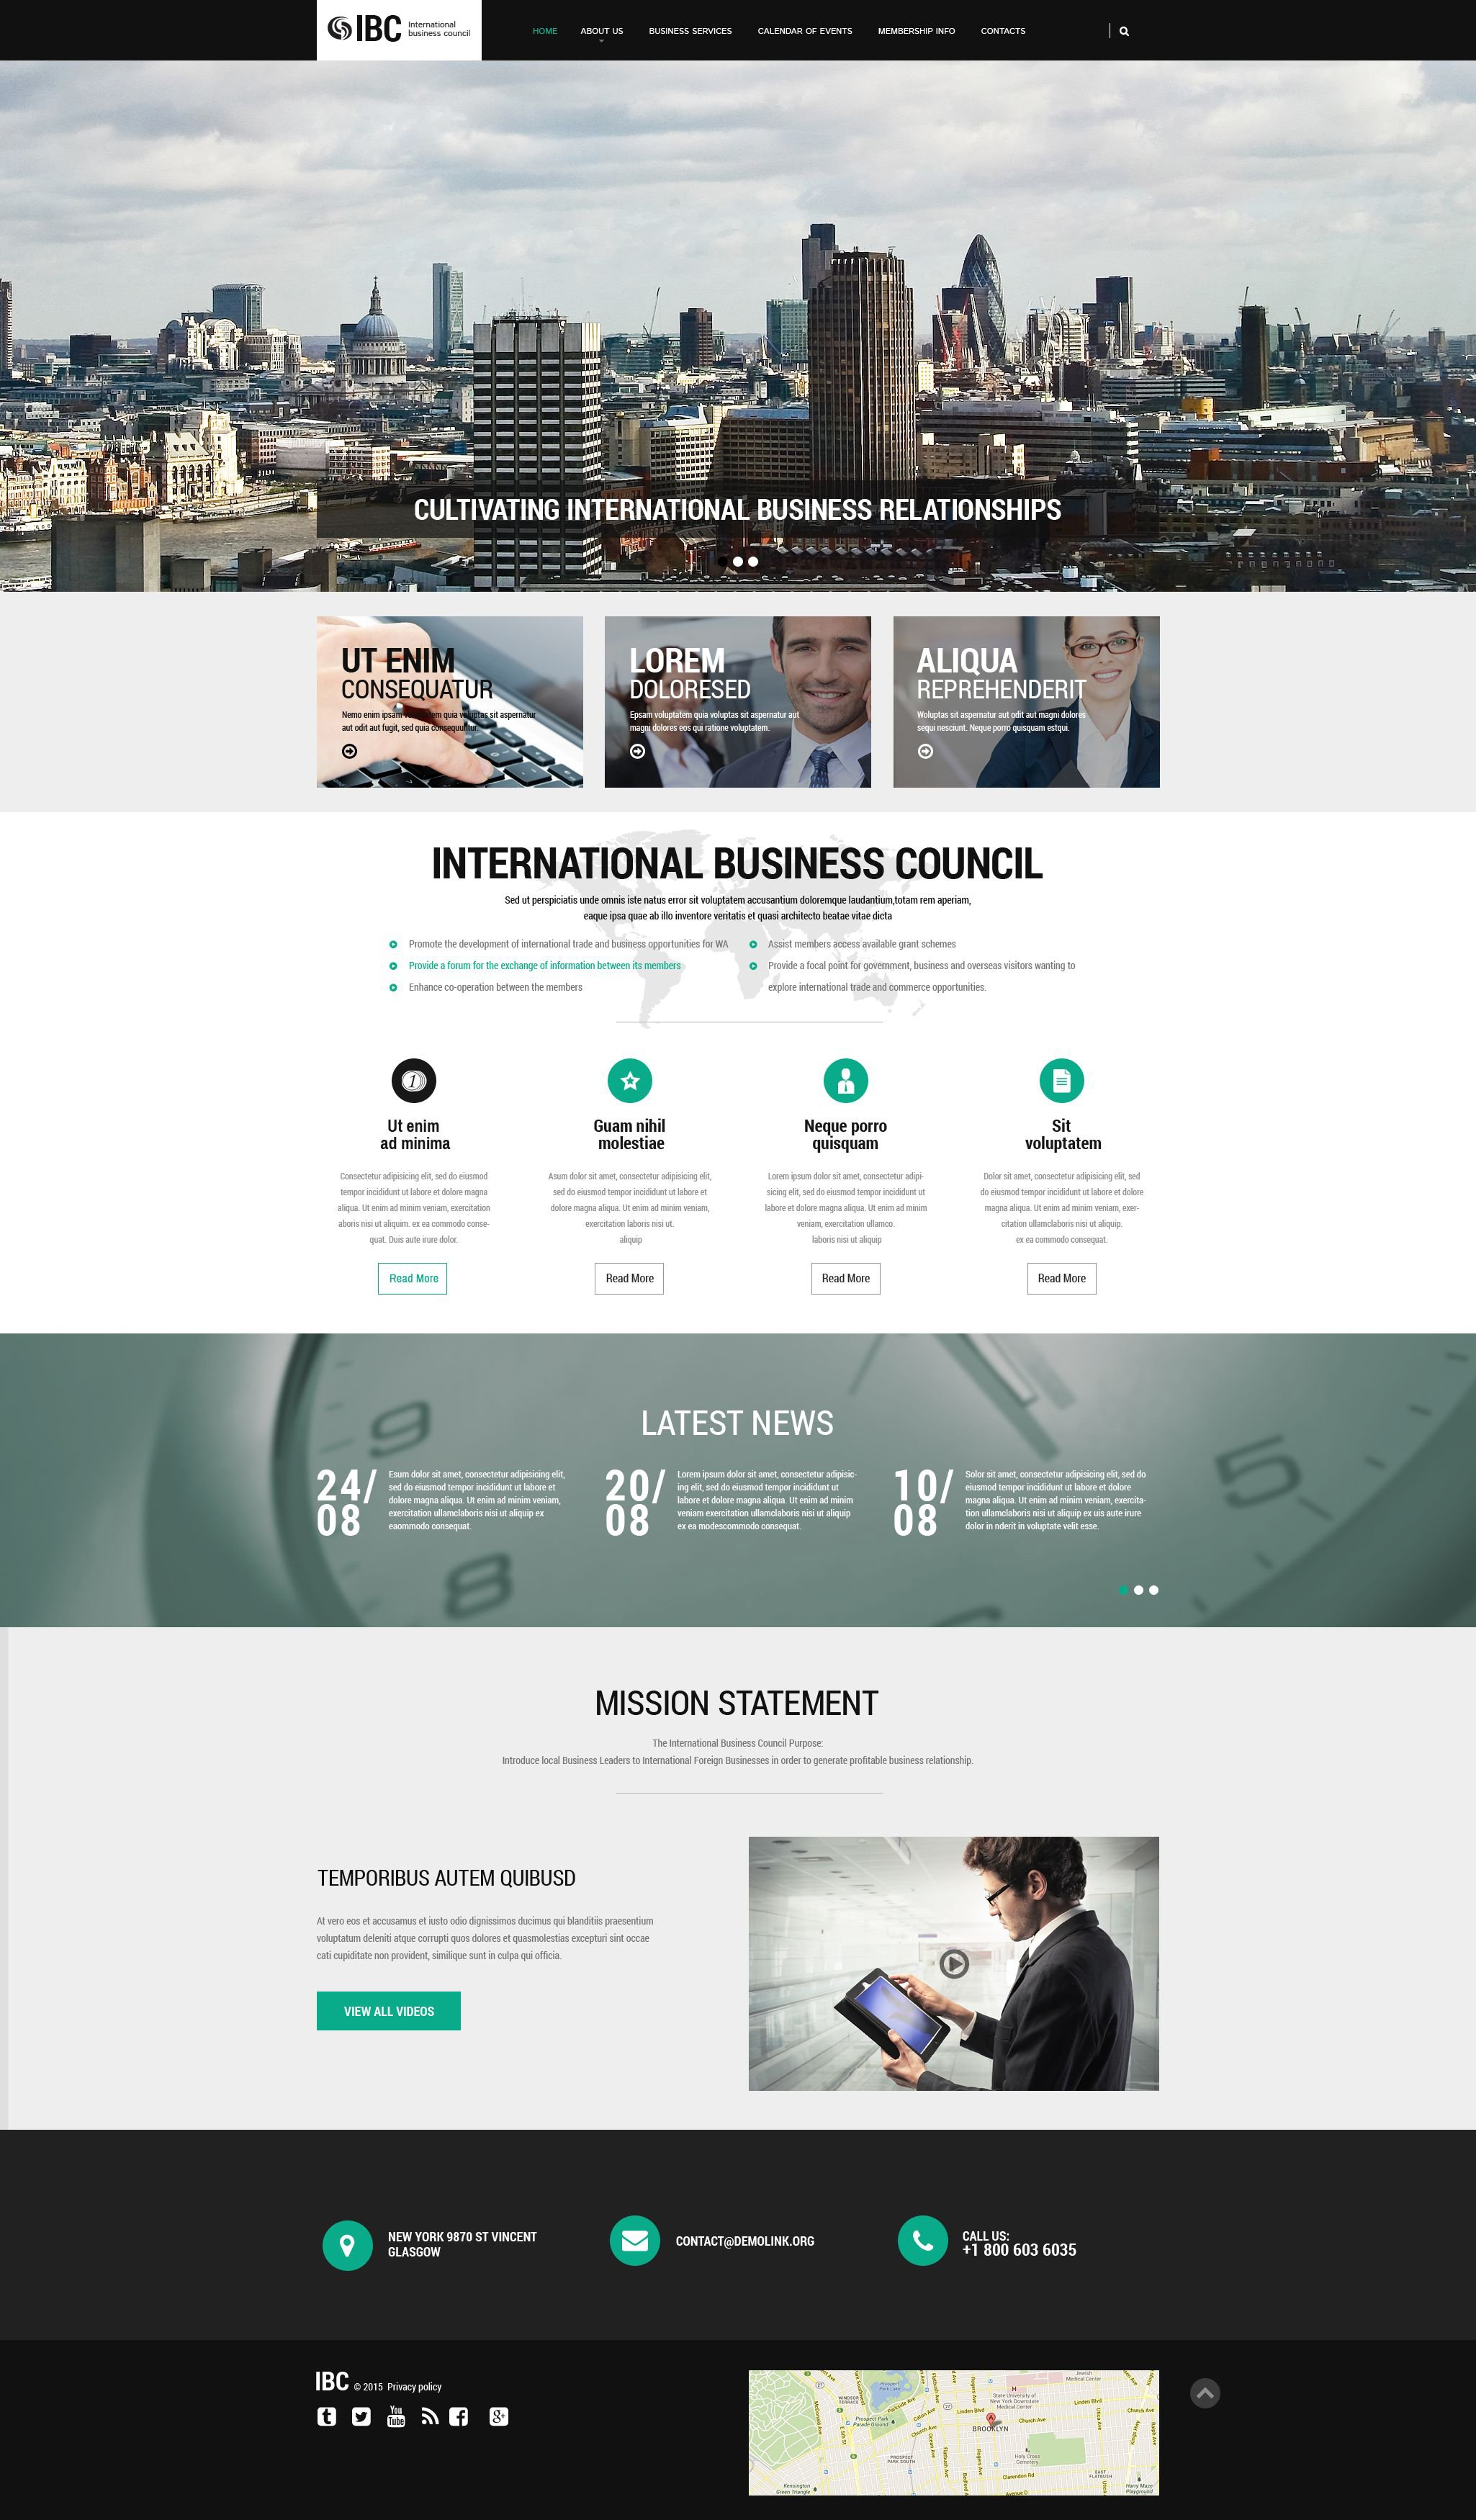 The IBC Business Consultant Responsive Javascript Animated Design 54570, one of the best website templates of its kind (business, most popular), also known as IBC business consultant website template, success company website template, enterprise solution website template, business website template, industry website template, technical website template, clients website template, customer support website template, automate website template, flow website template, services website template, plug-in website template, flex website template, profile website template, principles website template, web products website template, technology system and related with IBC business consultant, success company, enterprise solution, business, industry, technical, clients, customer support, automate, flow, services, plug-in, flex, profile, principles, web products, technology system, etc.